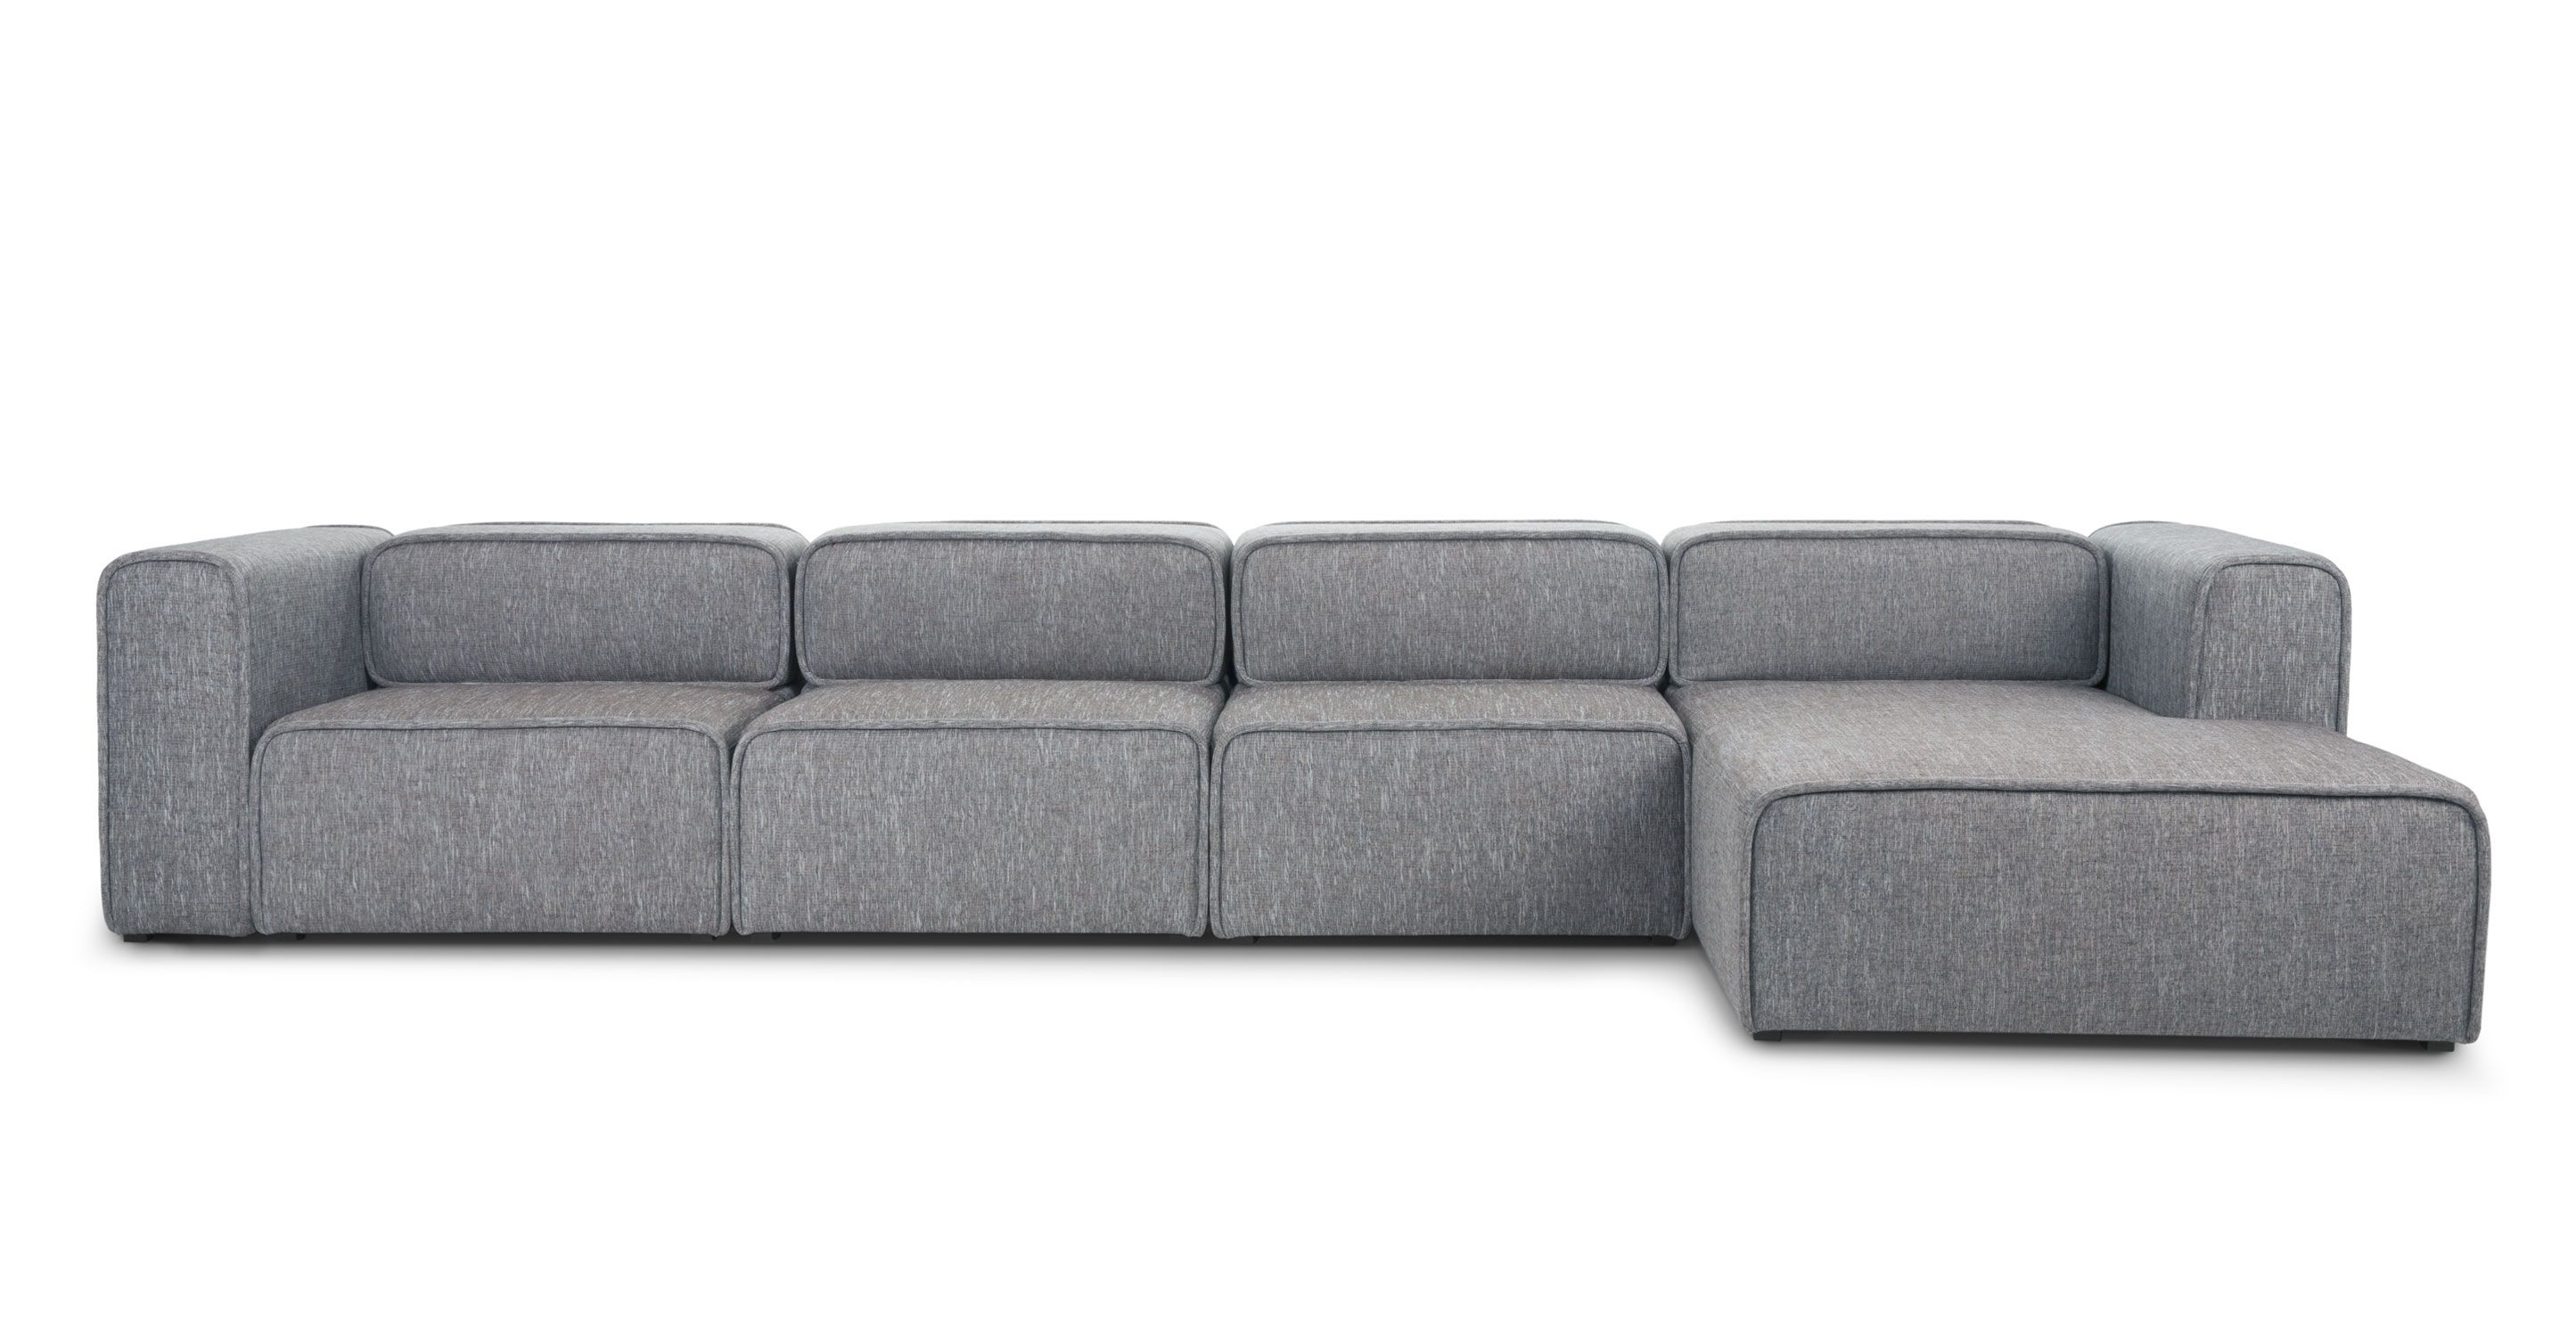 Stupendous Acura Right Sectional In 2019 Den Furniture Evergreenethics Interior Chair Design Evergreenethicsorg